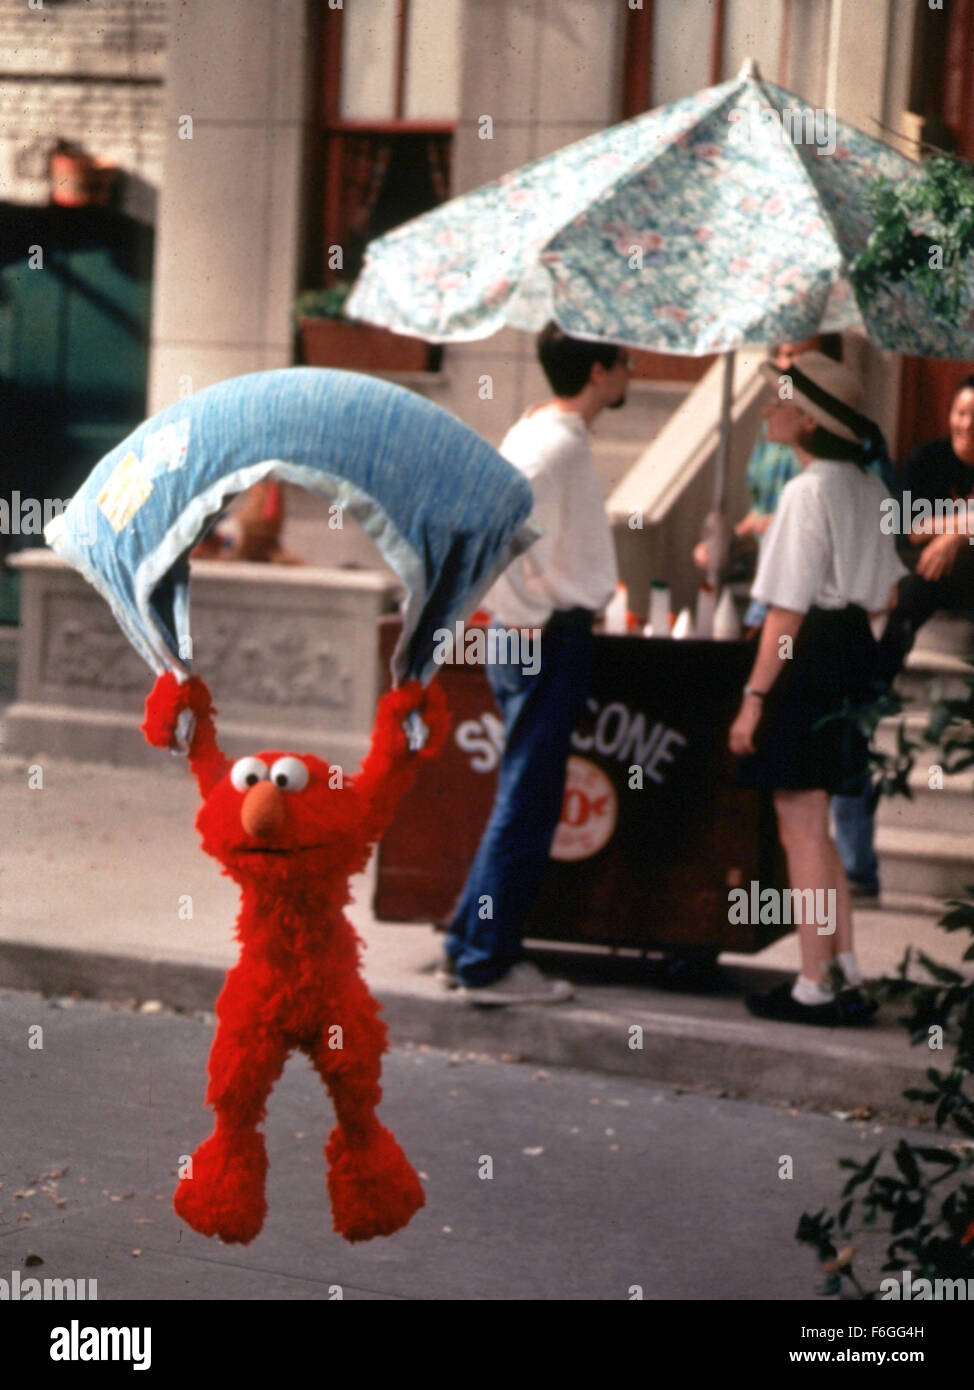 Sep 01, 1999; Los Angeles, CA, USA; 'ELMO' parachutes down to the street in the movie 'The Adventures of Elmo in Stock Photo